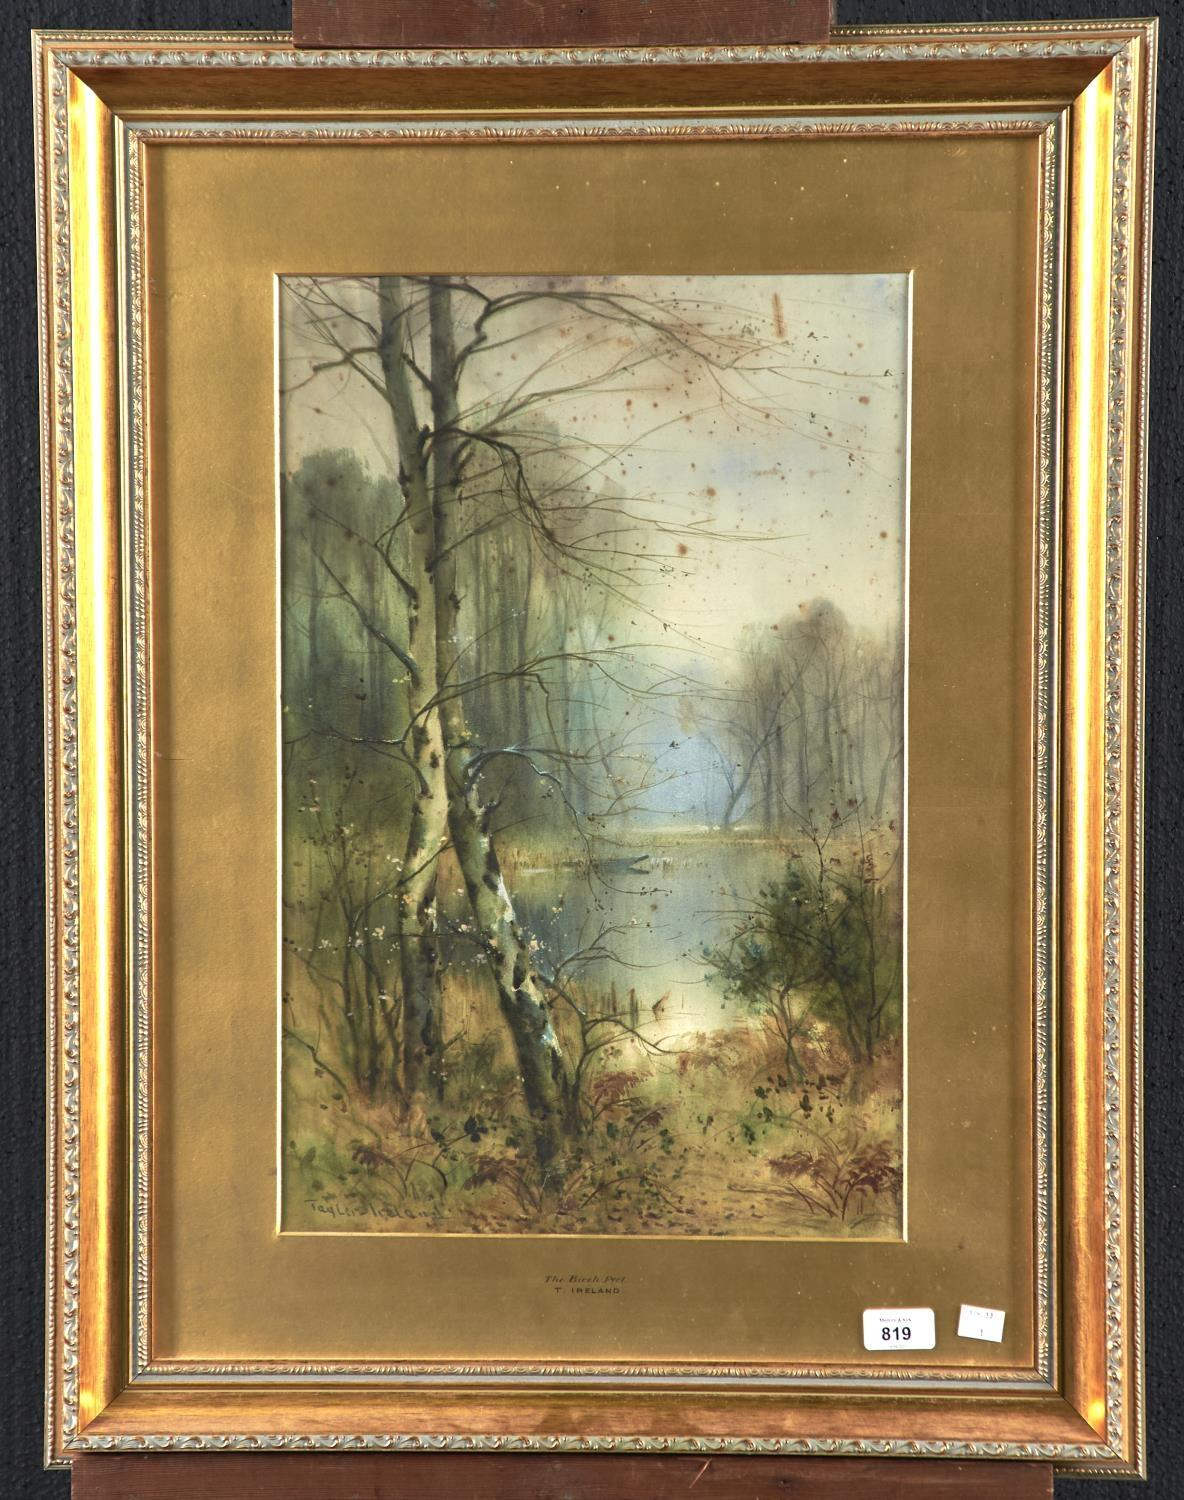 THOMAS TAYLER-IRELAND (1874-1931) - THE BIRCH POOL, SIGNED, WATERCOLOUR, 52 X 34CM Foxing as evident - Image 2 of 2